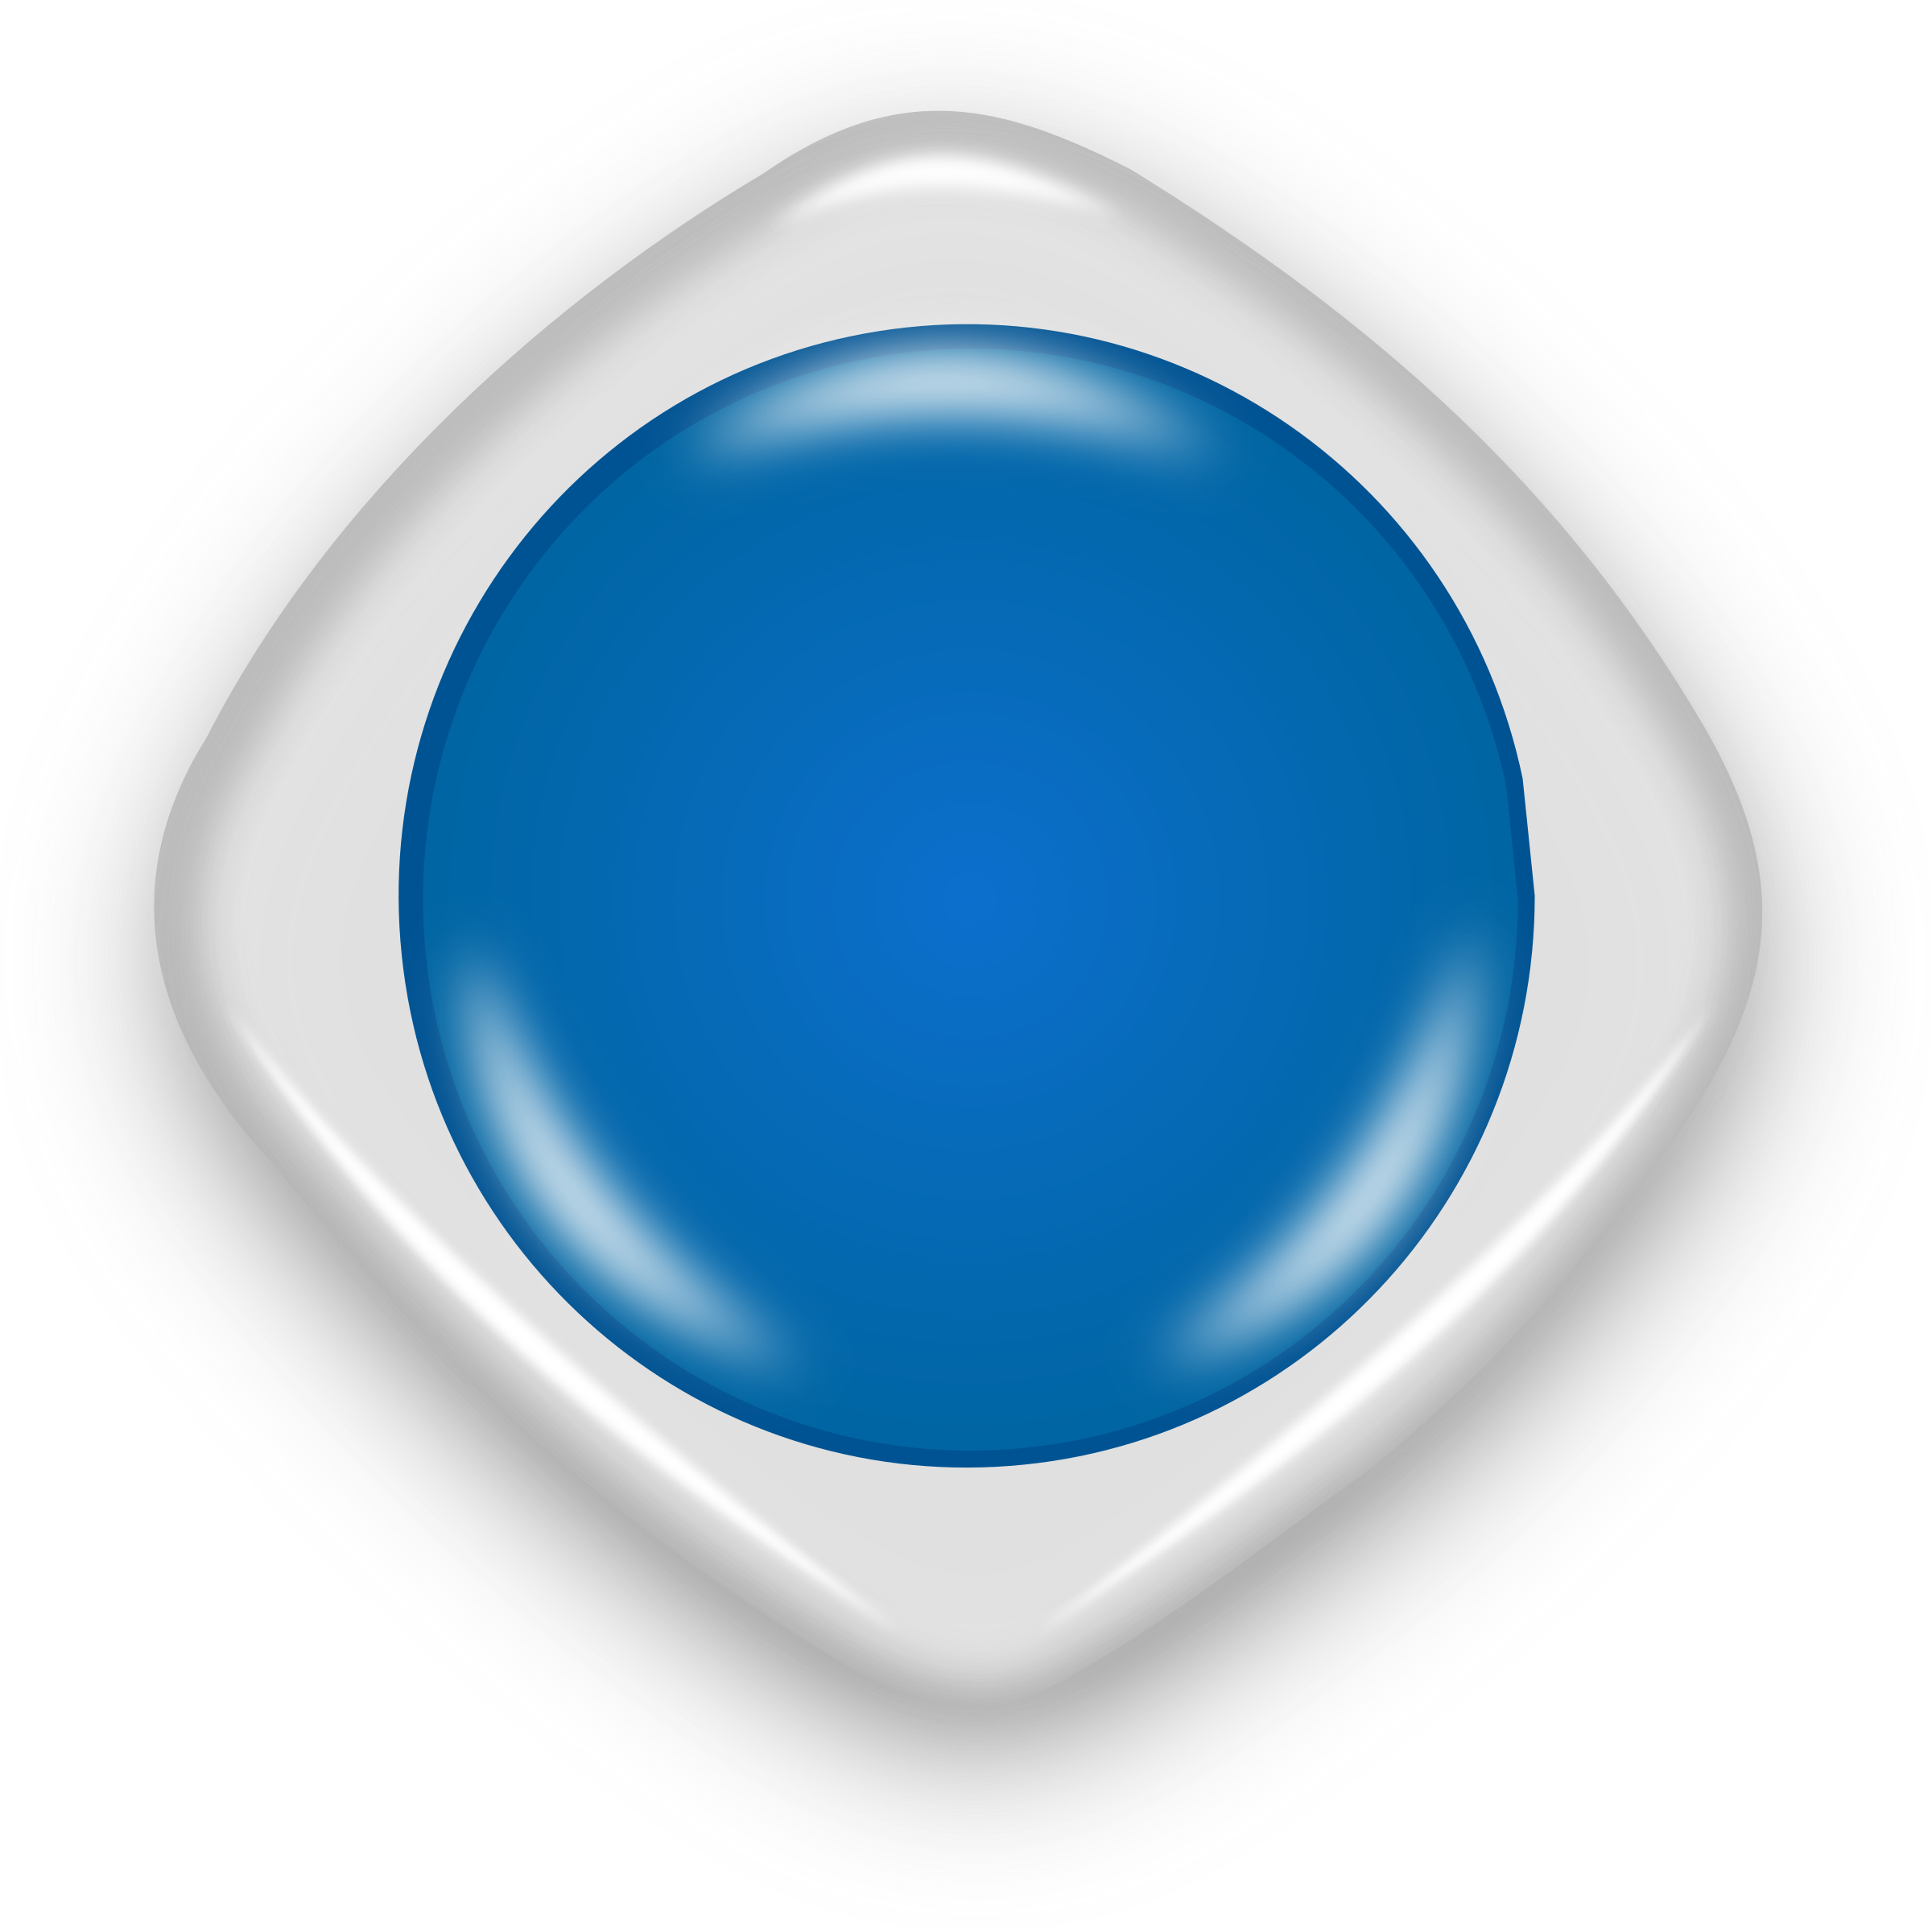 Button by cameltech